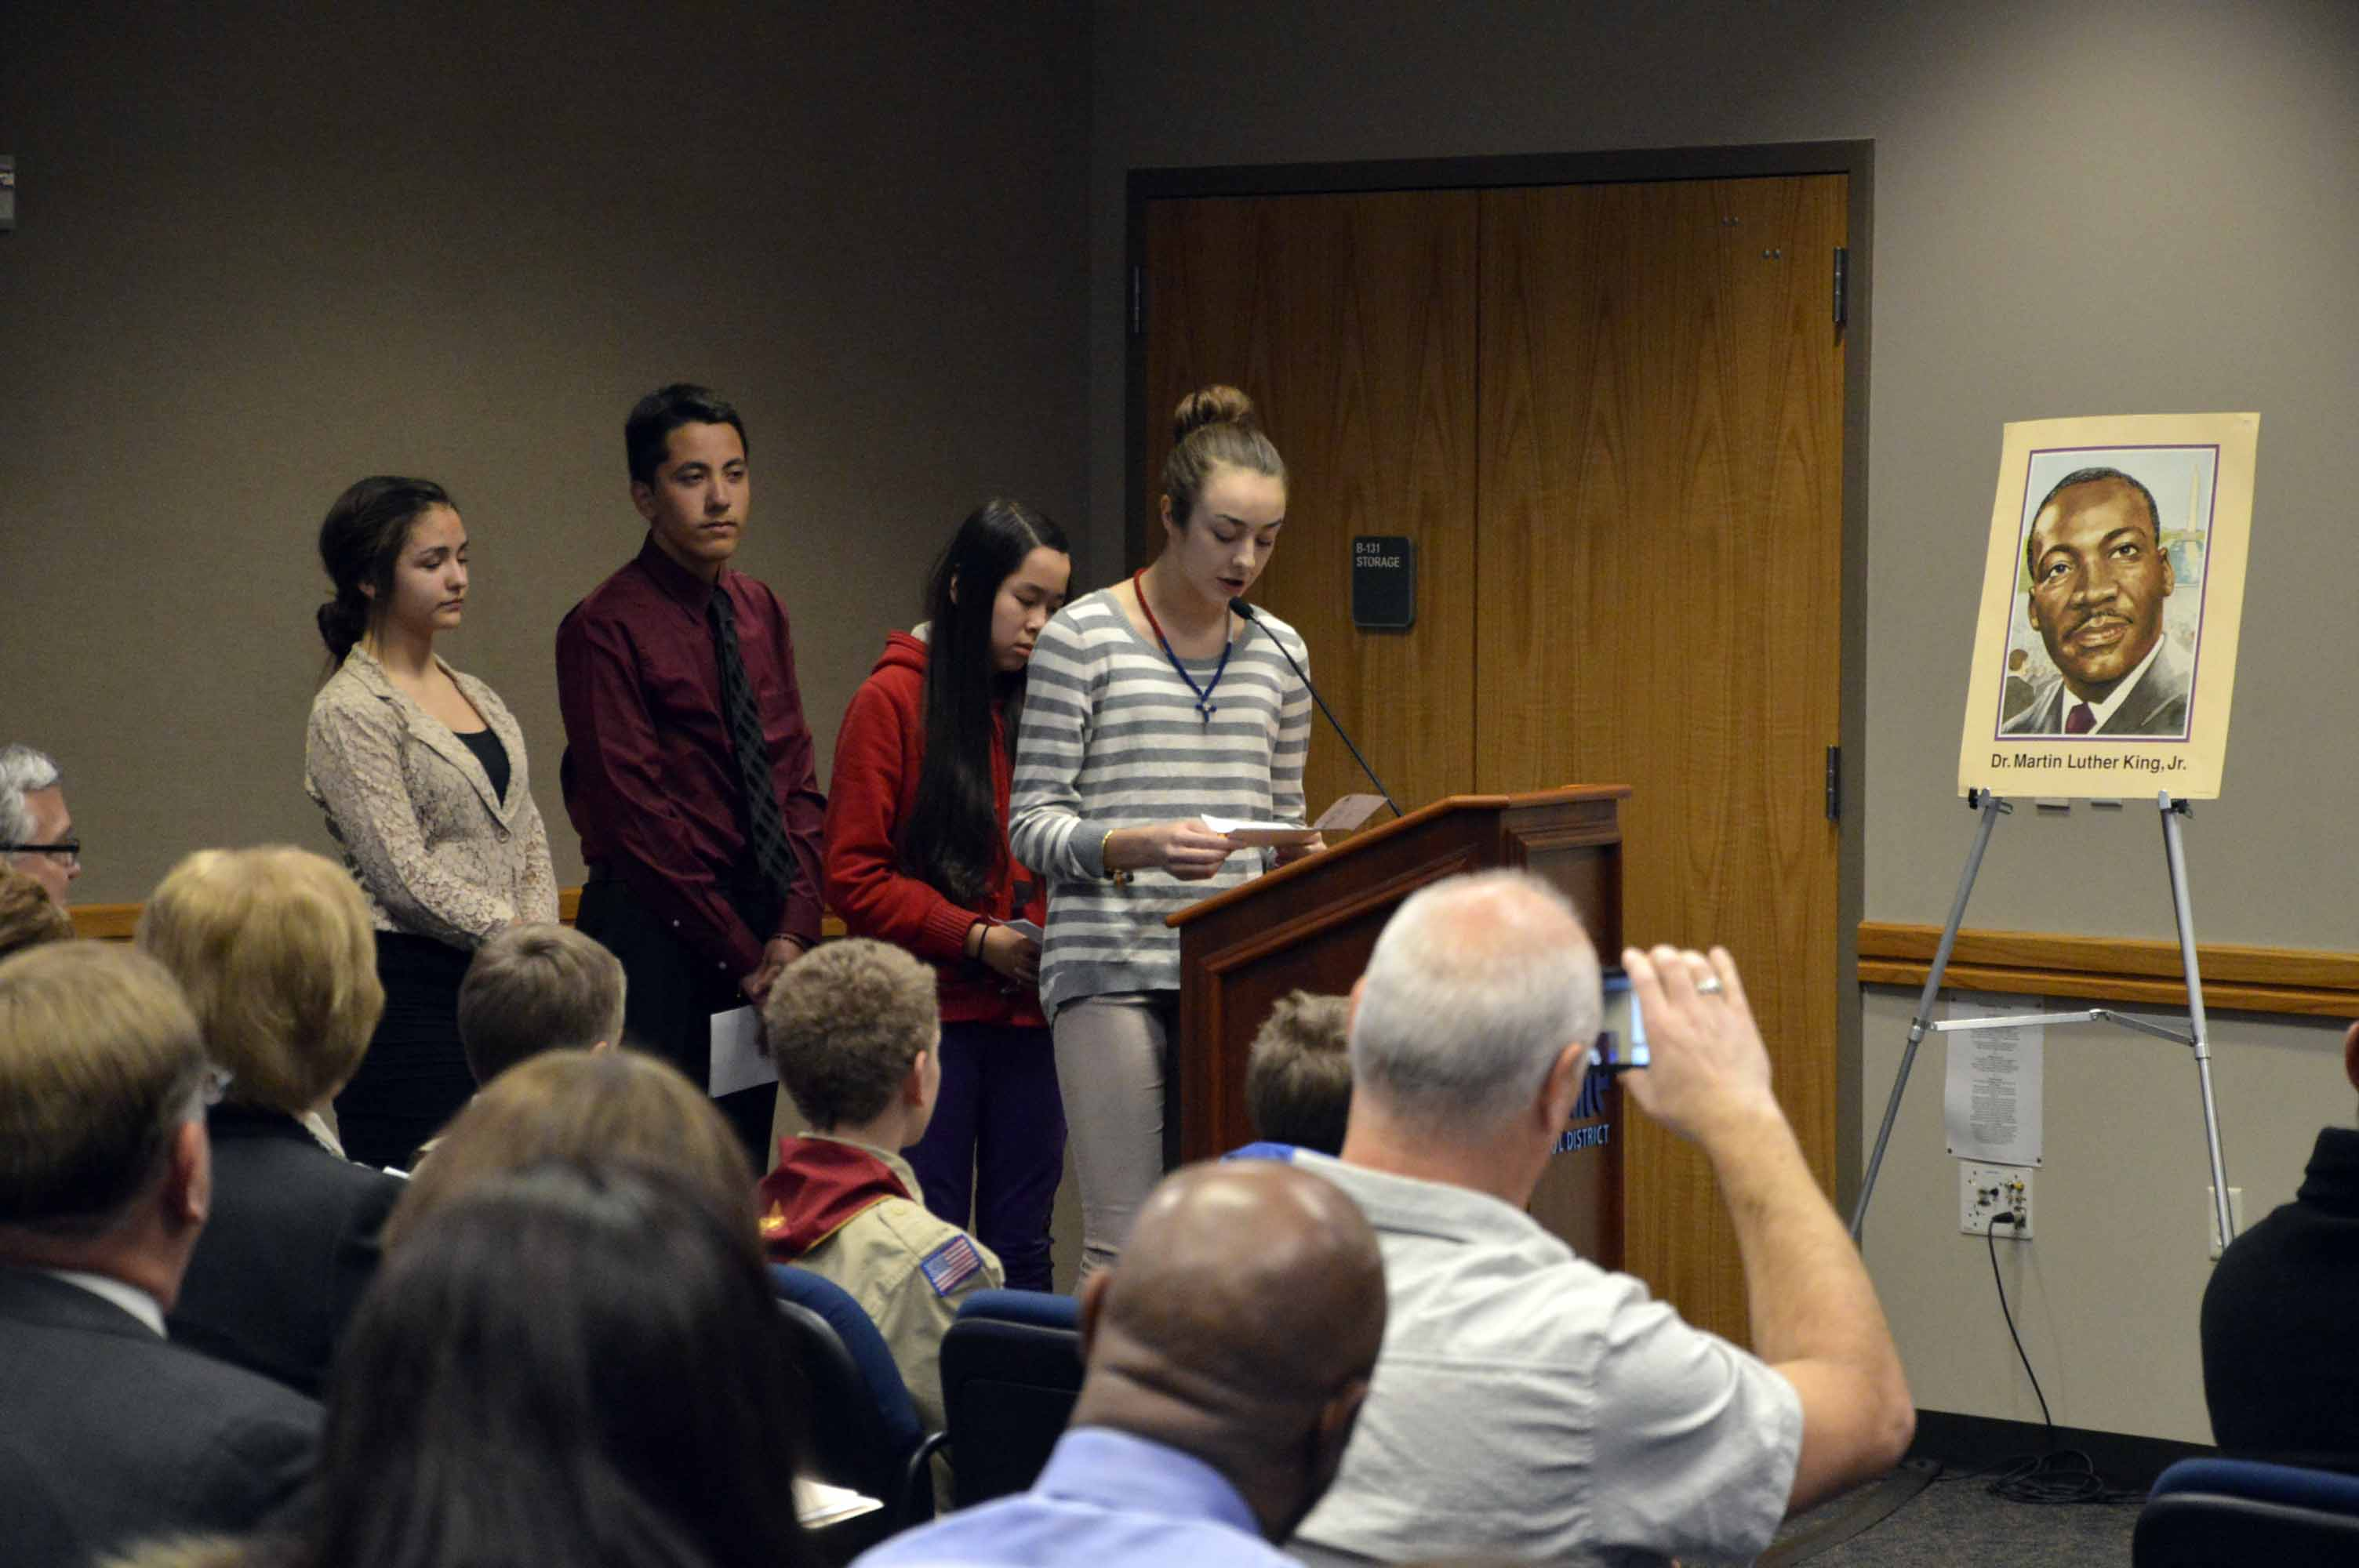 Nh constitution day essay contest